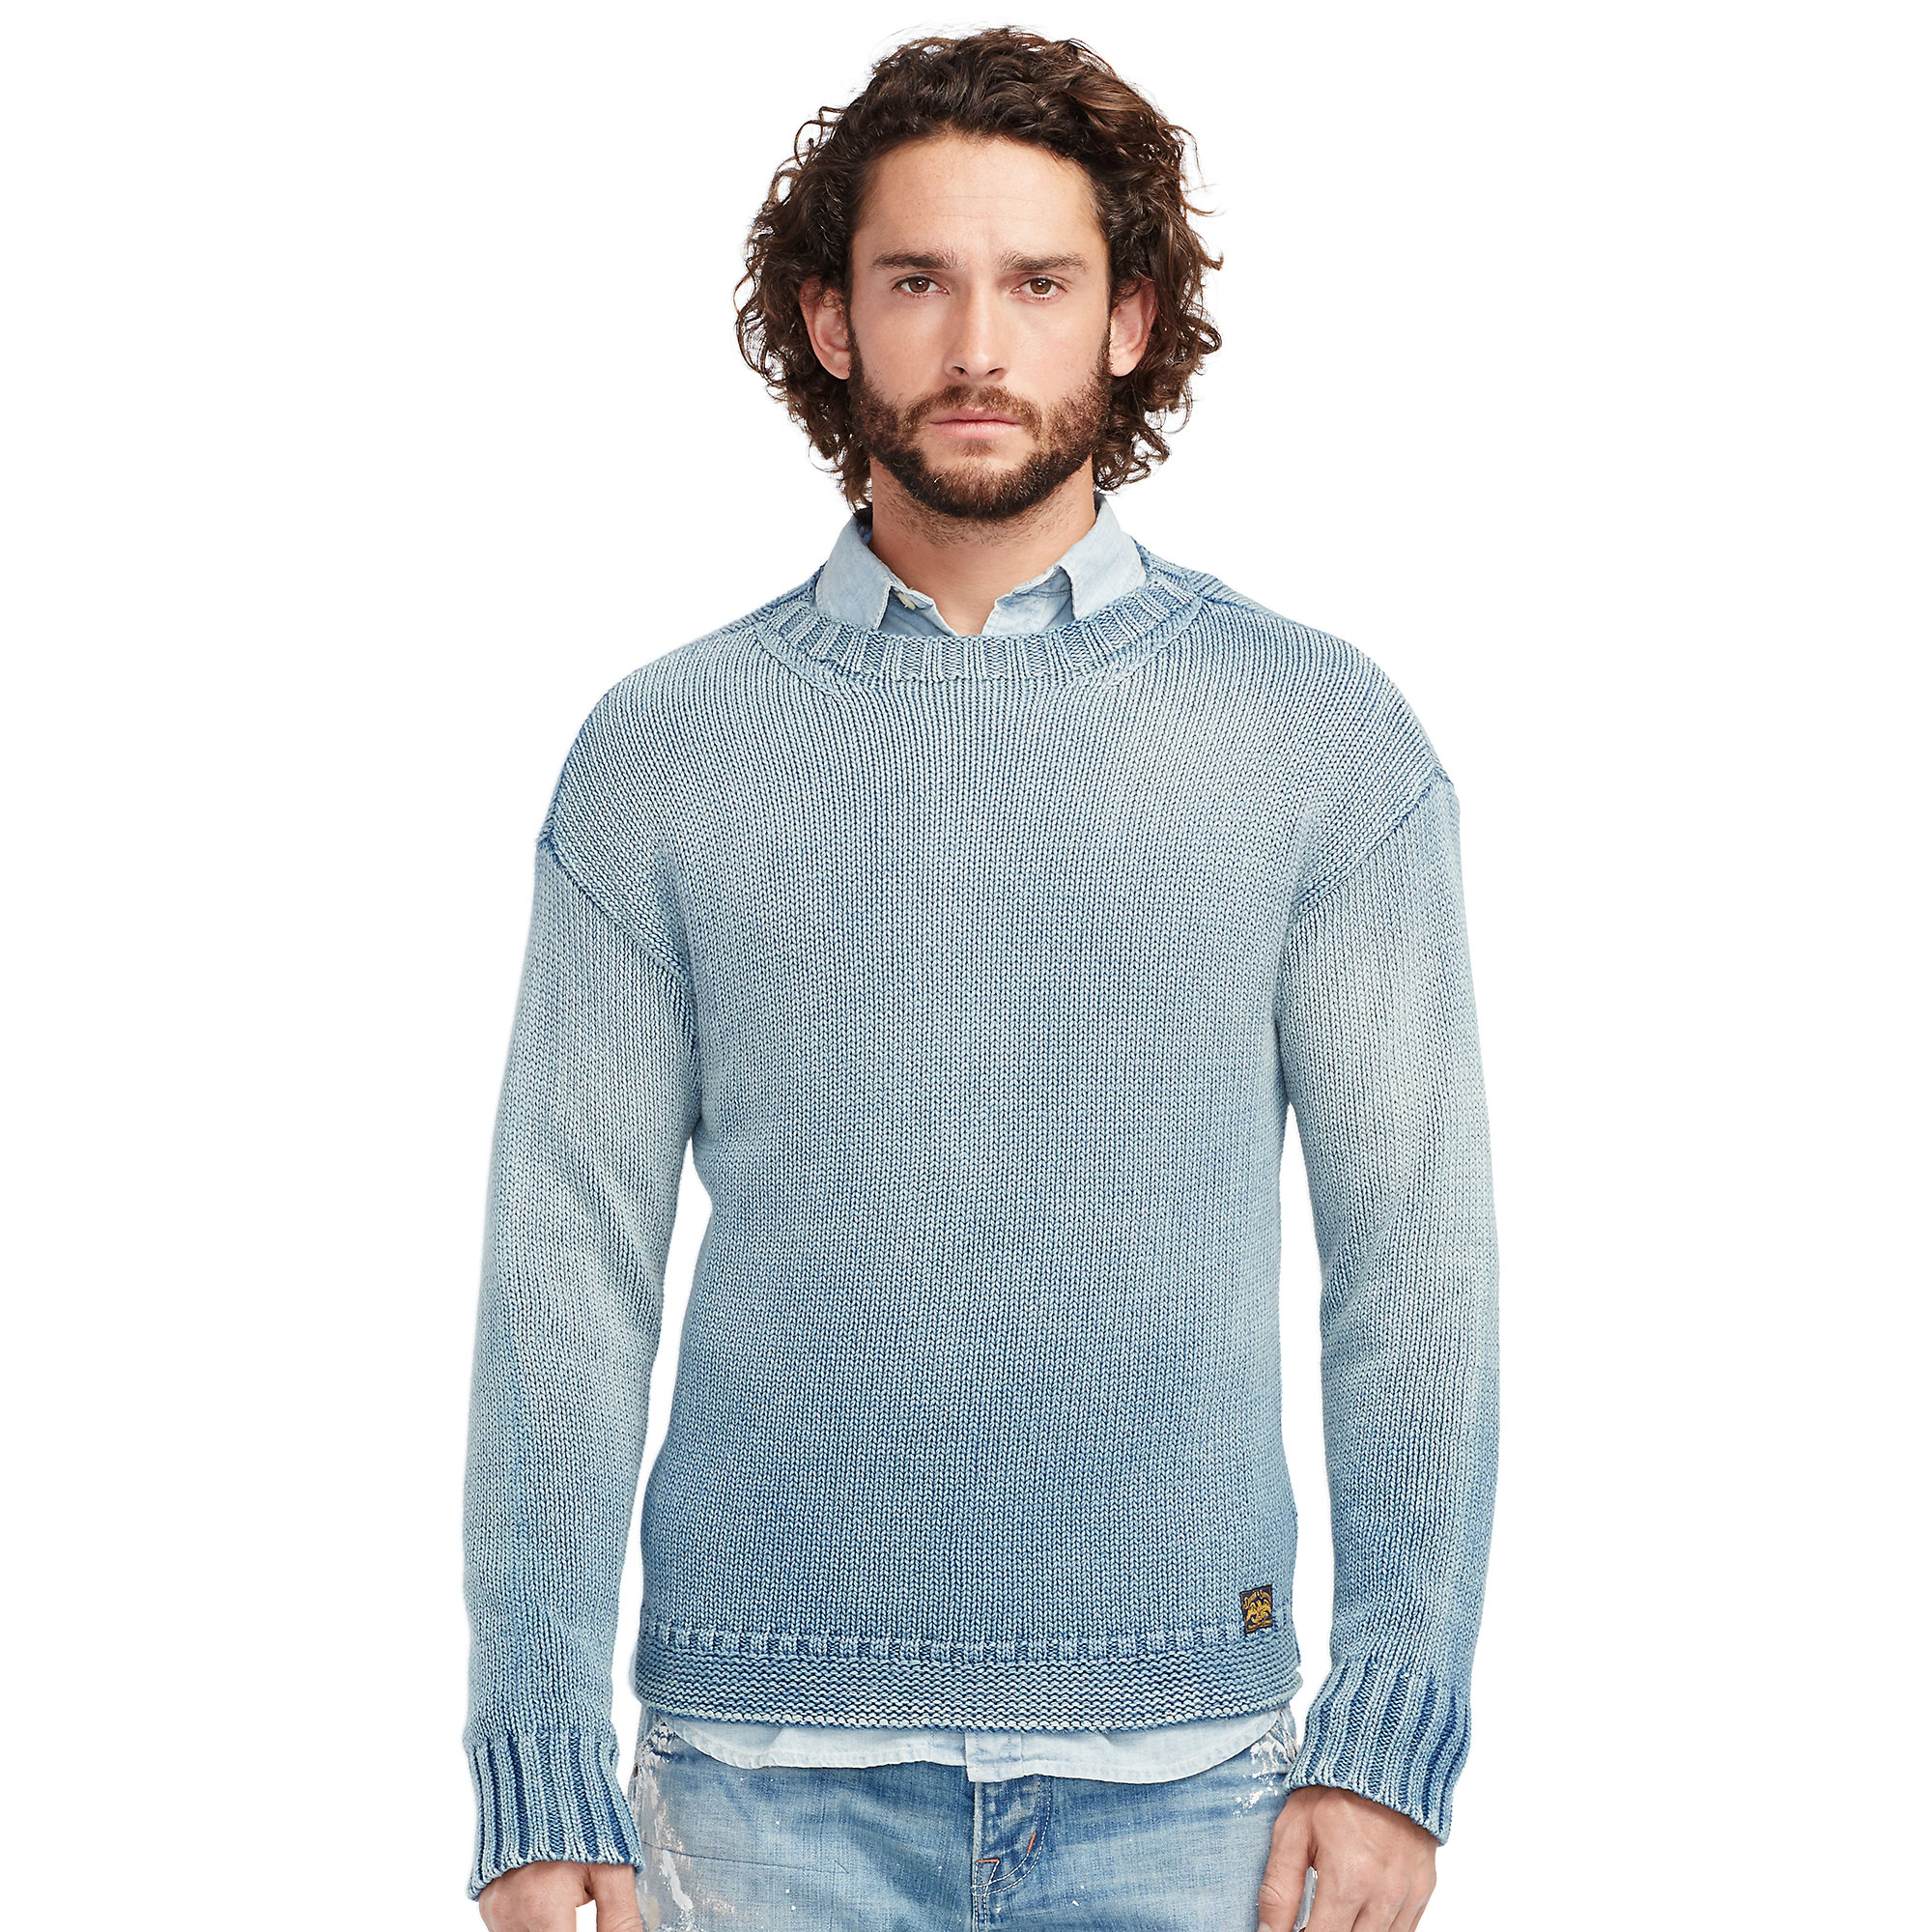 Denim & supply ralph lauren Men's Cotton V-neck Cardigan in Blue ...